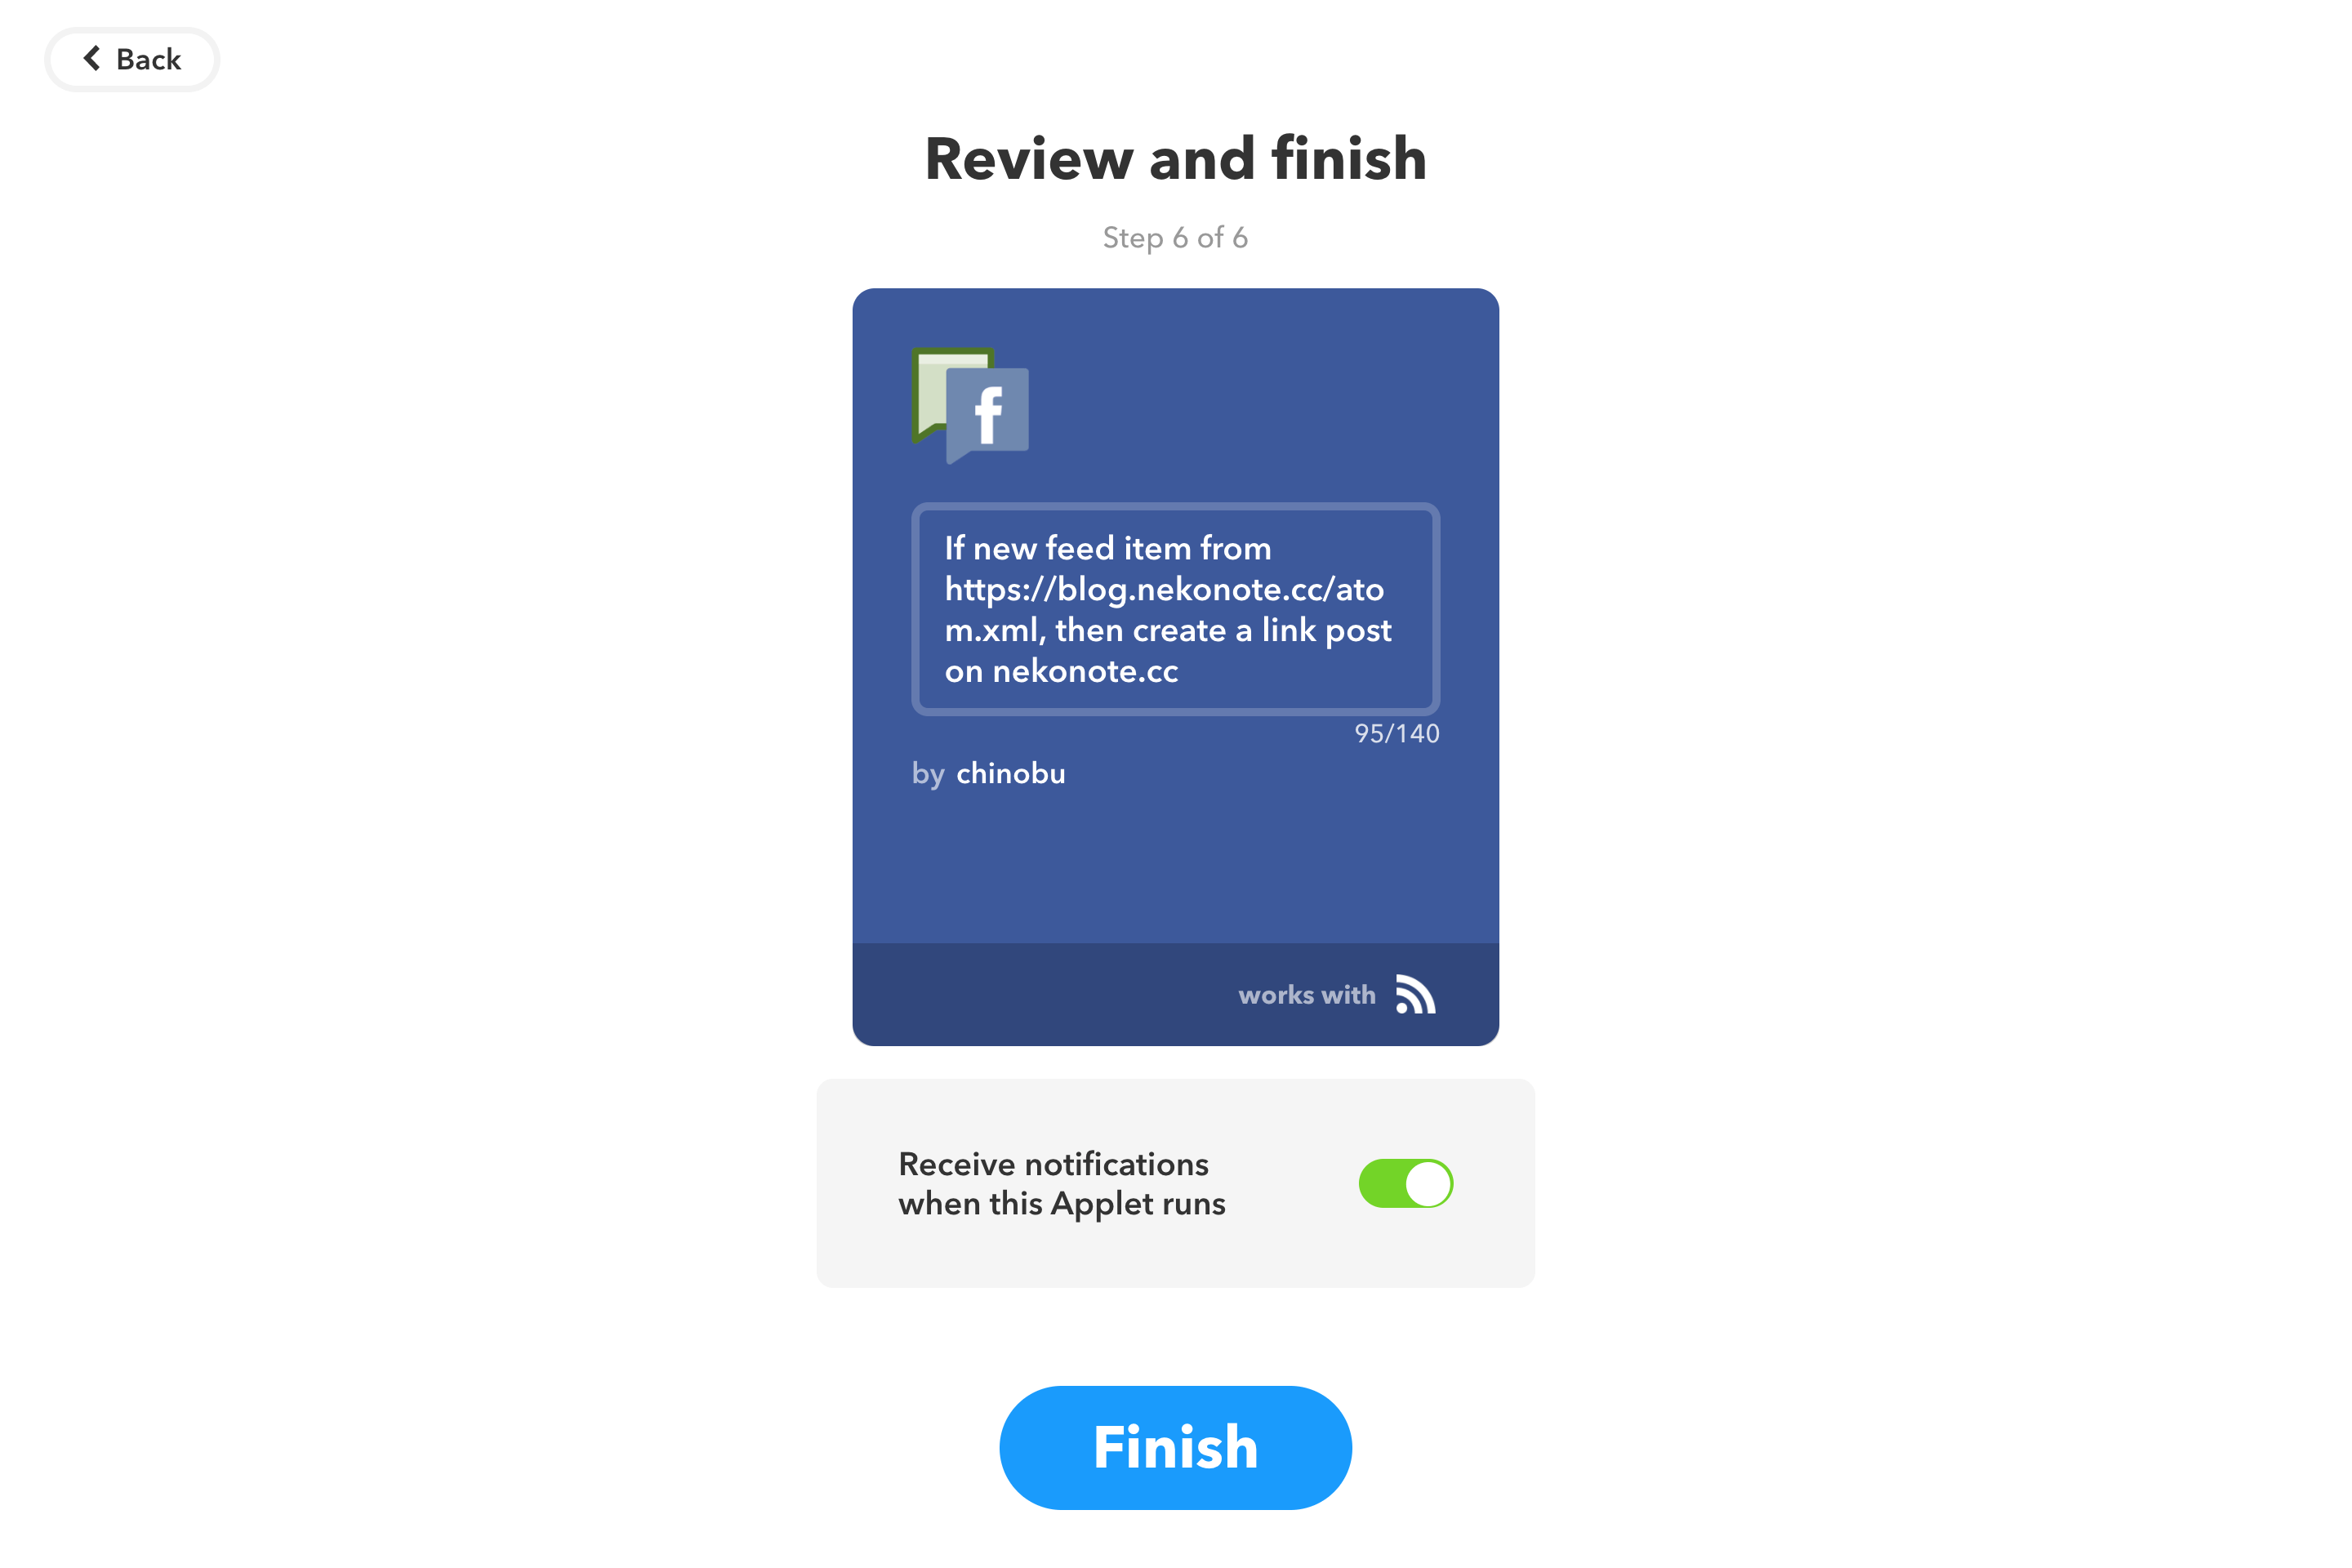 Review and finish